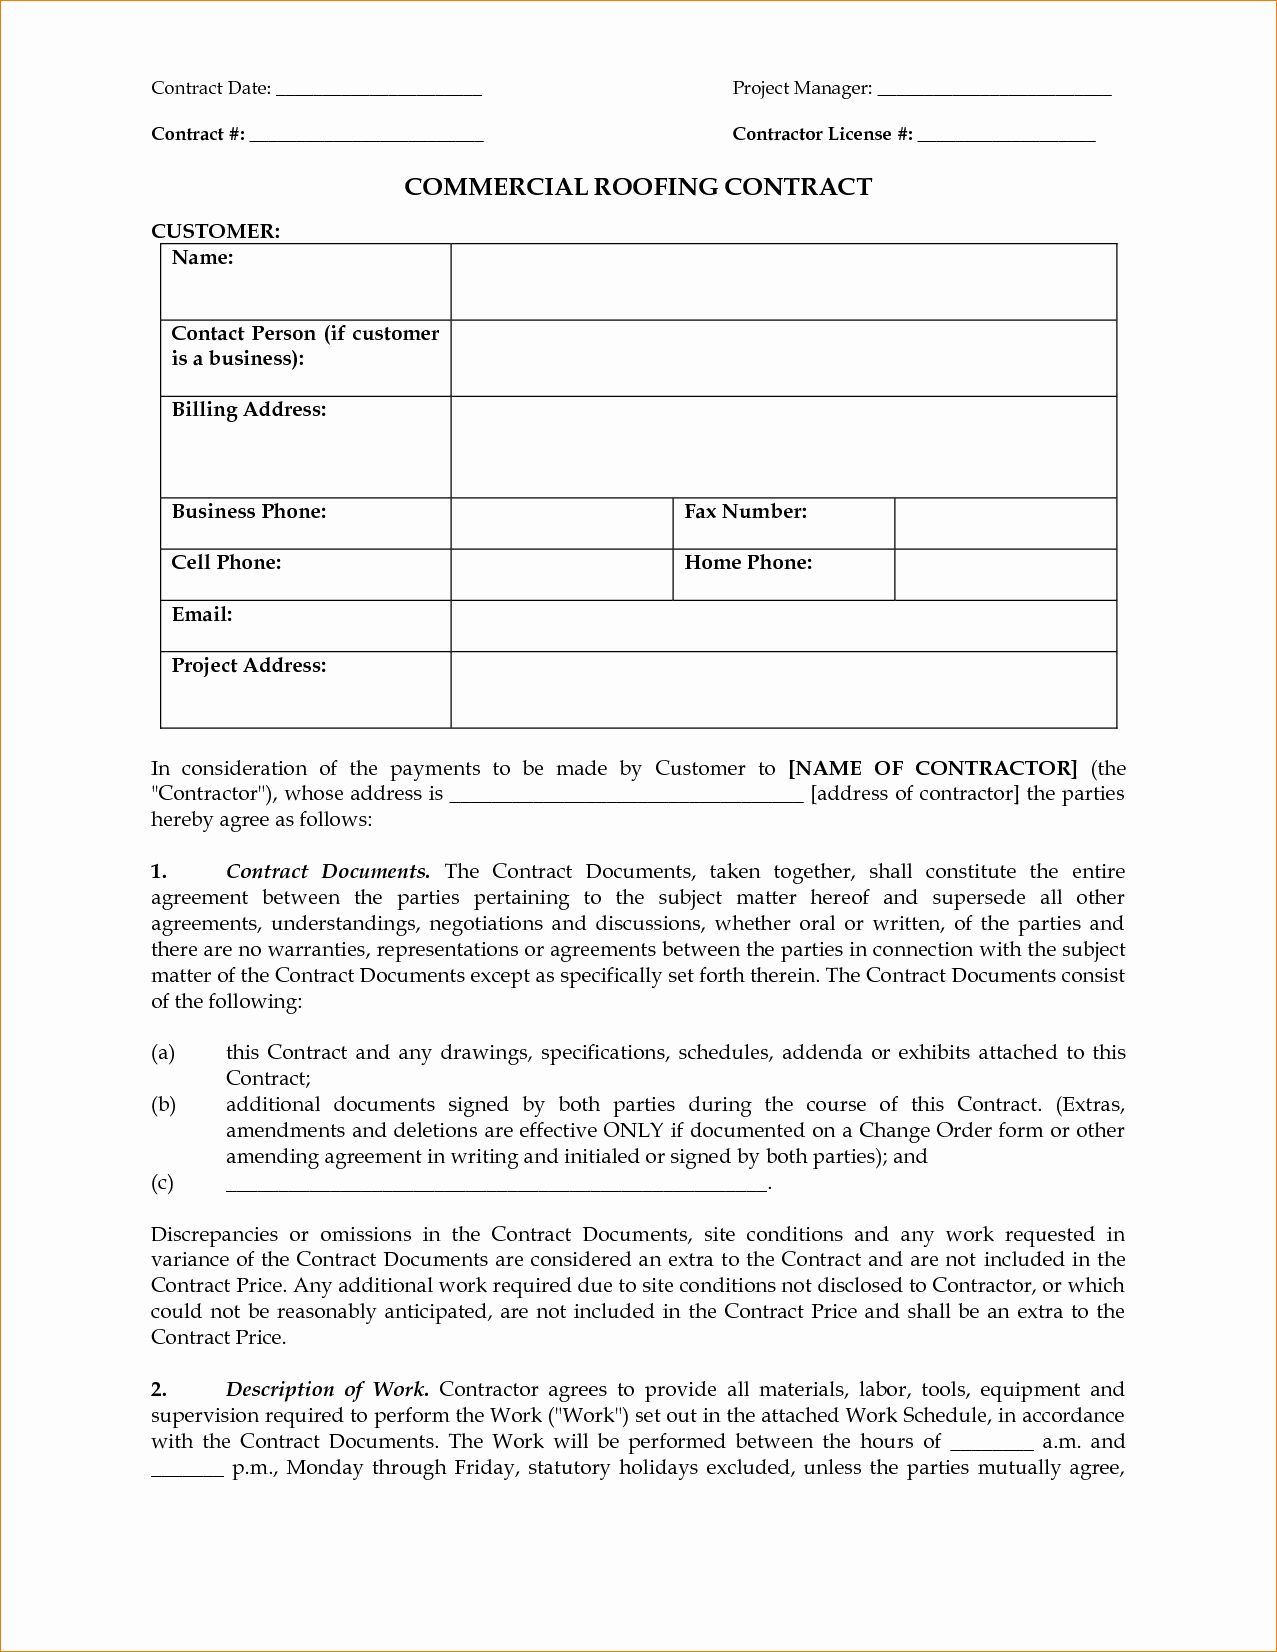 Free Residential Roofing Contract Template Beautiful Contract Roofing Contract Template Roofing Contract Contract Template Roofing Estimate Free residential roofing contract template